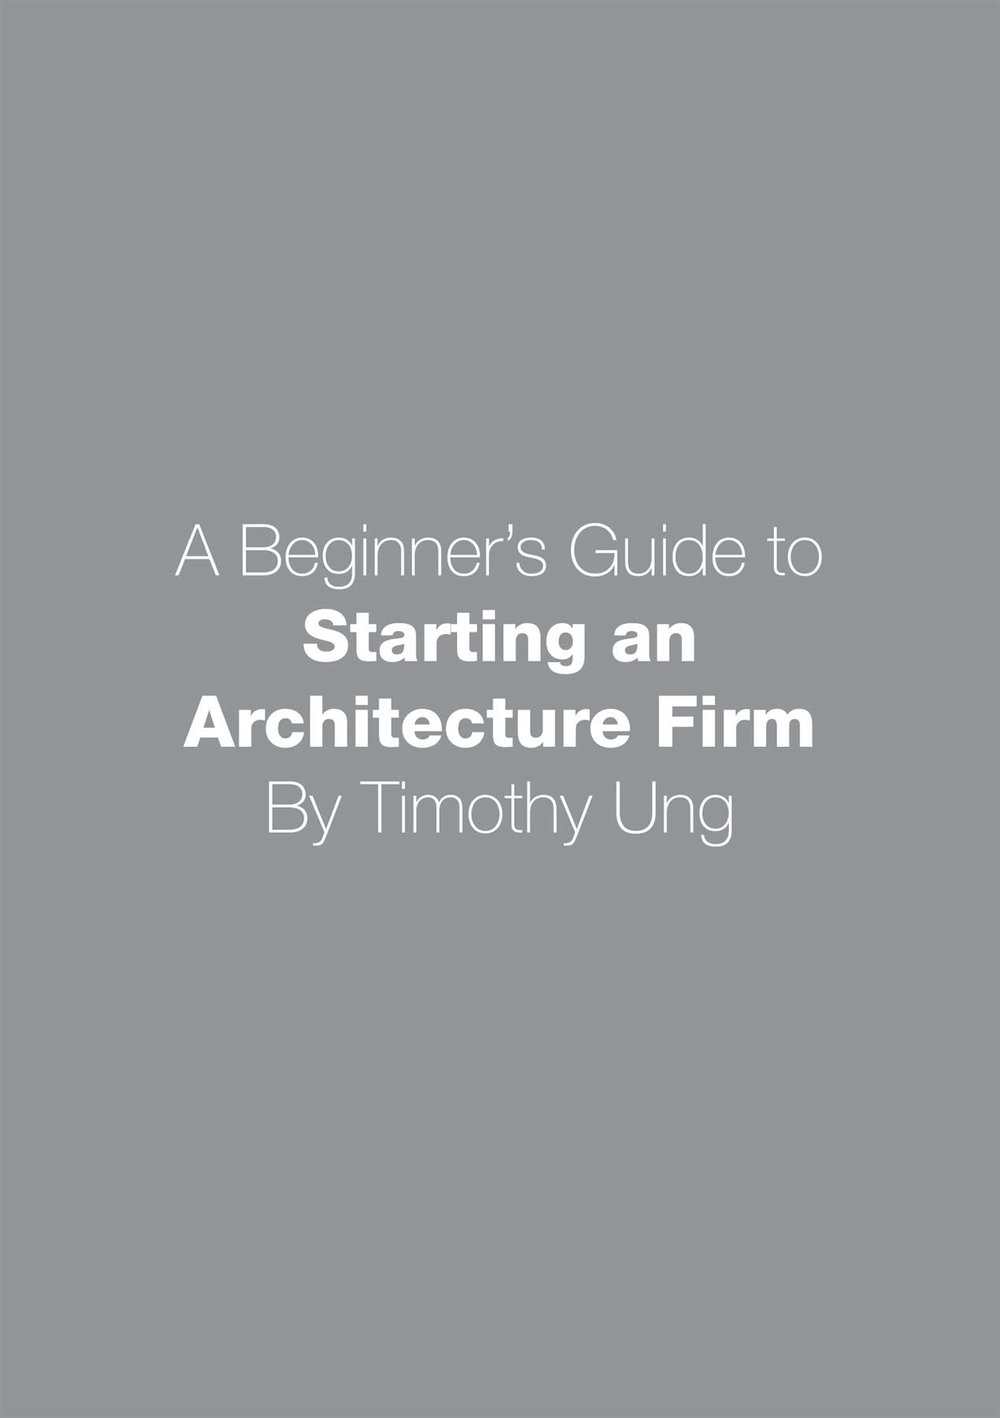 Starting-an-Architecture-Firm-1.jpg